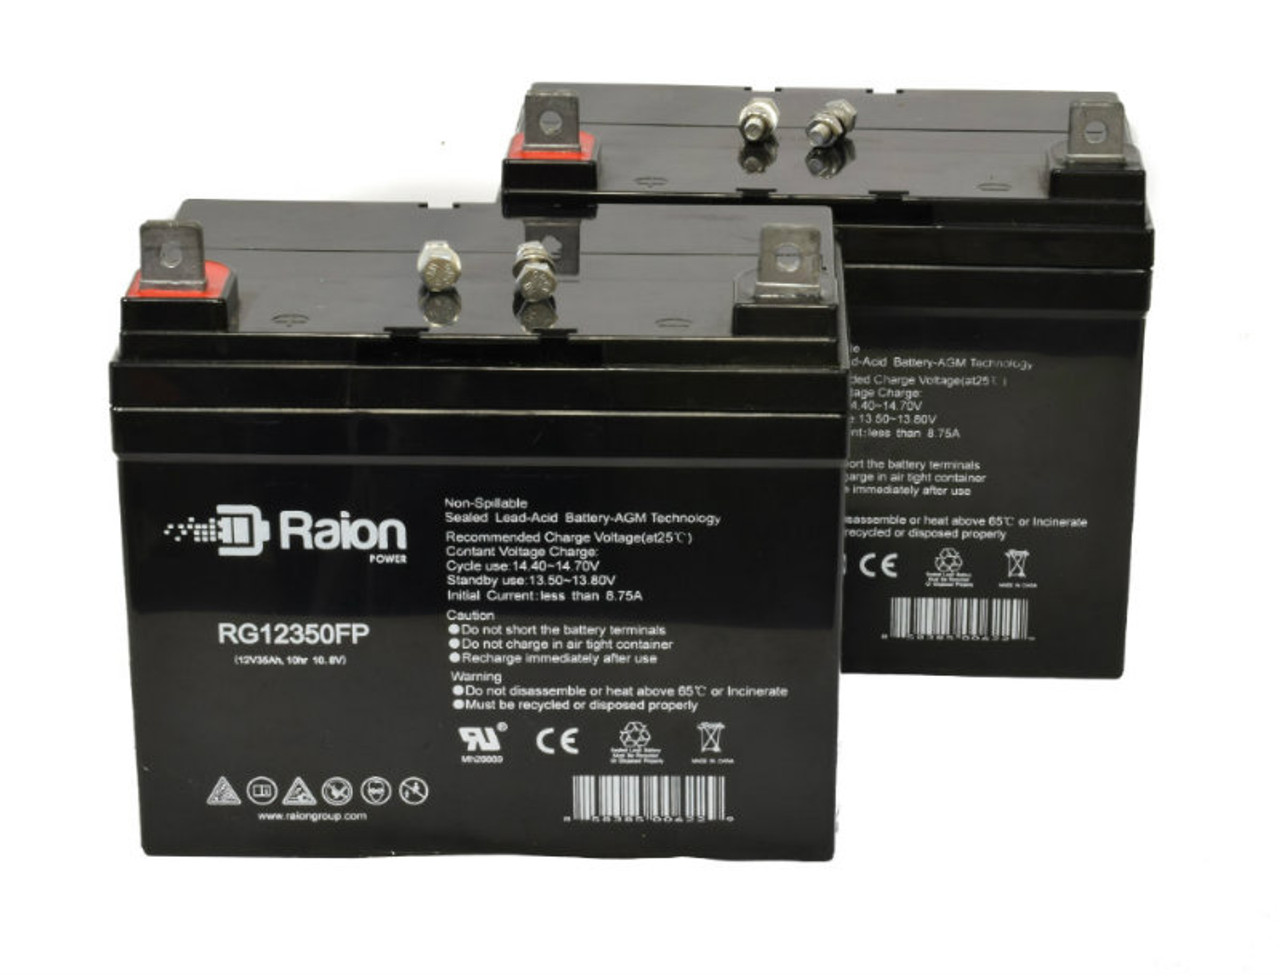 Raion Power RG12350FP Replacement Wheelchair Battery For Golden Technology GP-201-R U1 (2 Pack)